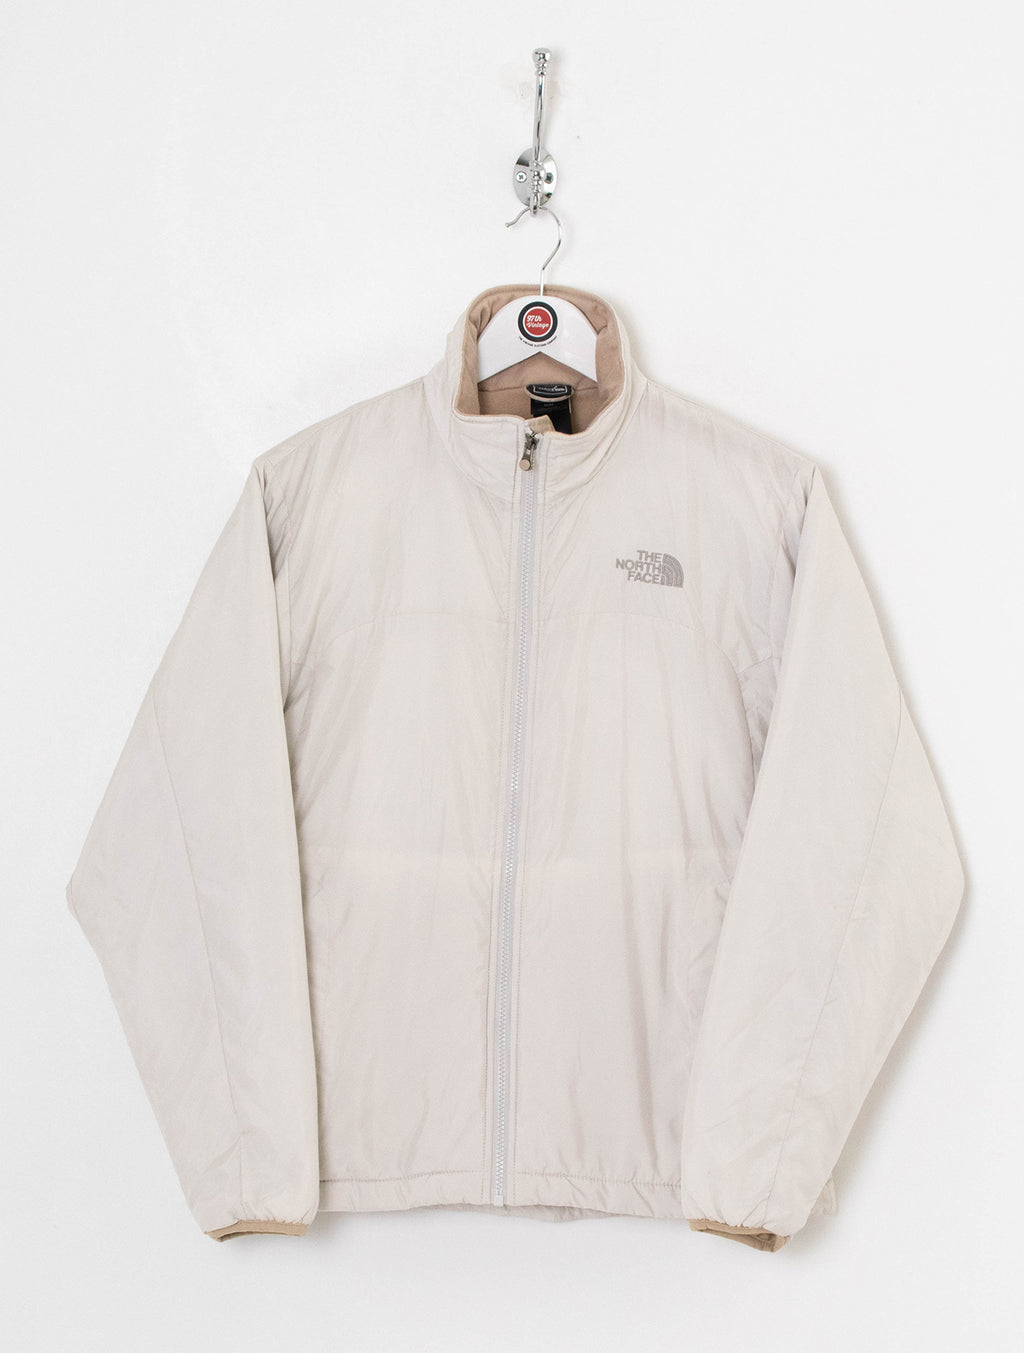 Women's The North Face Puffer Jacket (M)